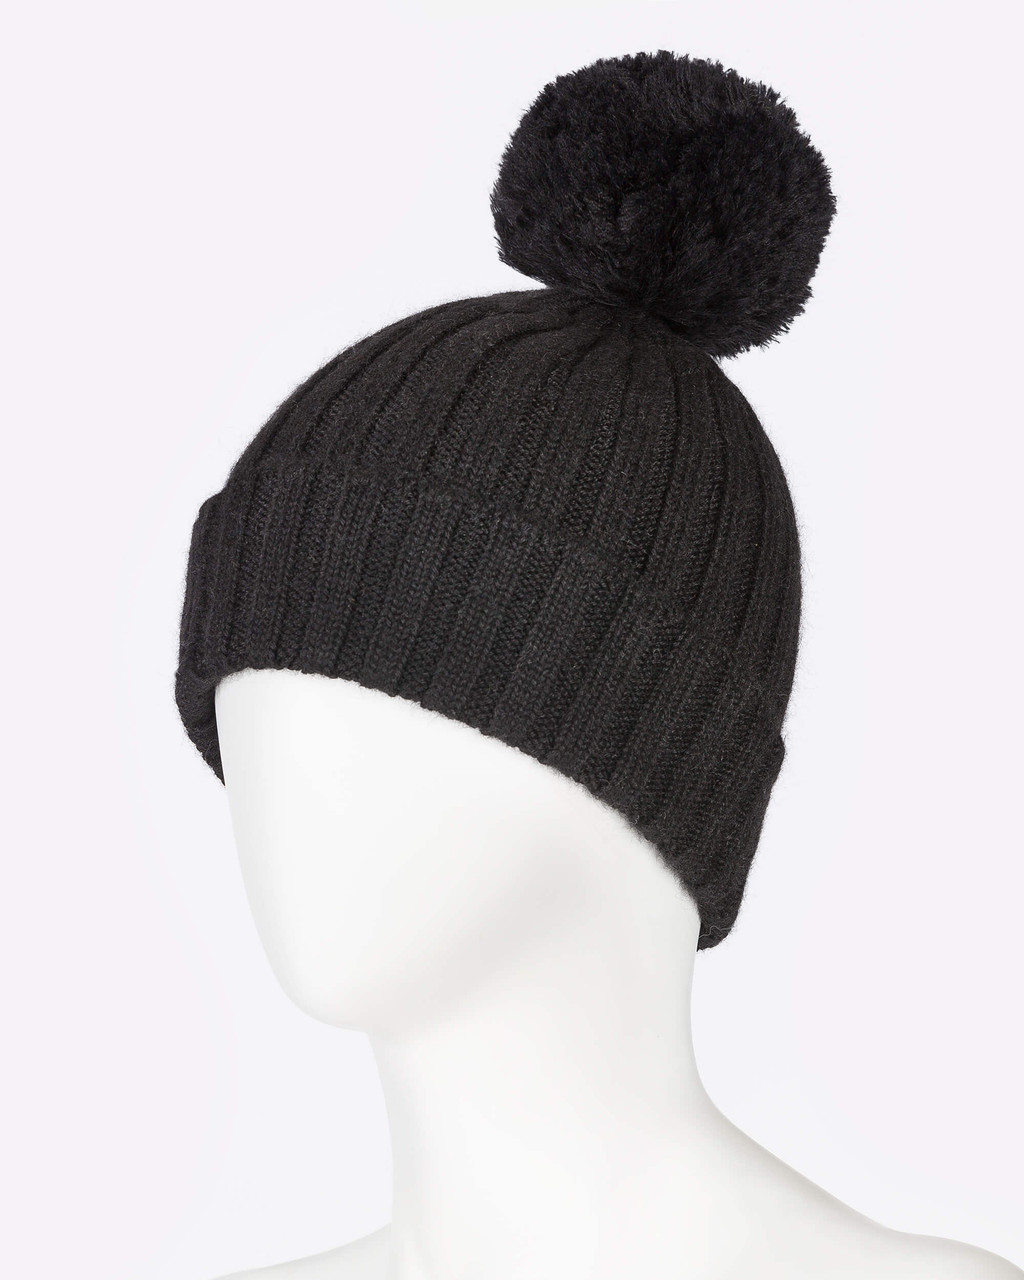 alicia adams alpaca davos hat, womens beanie hat, alpaca beanie hat,  all fair-trade made hat, alpaca vs cashmere, black alpaca hat